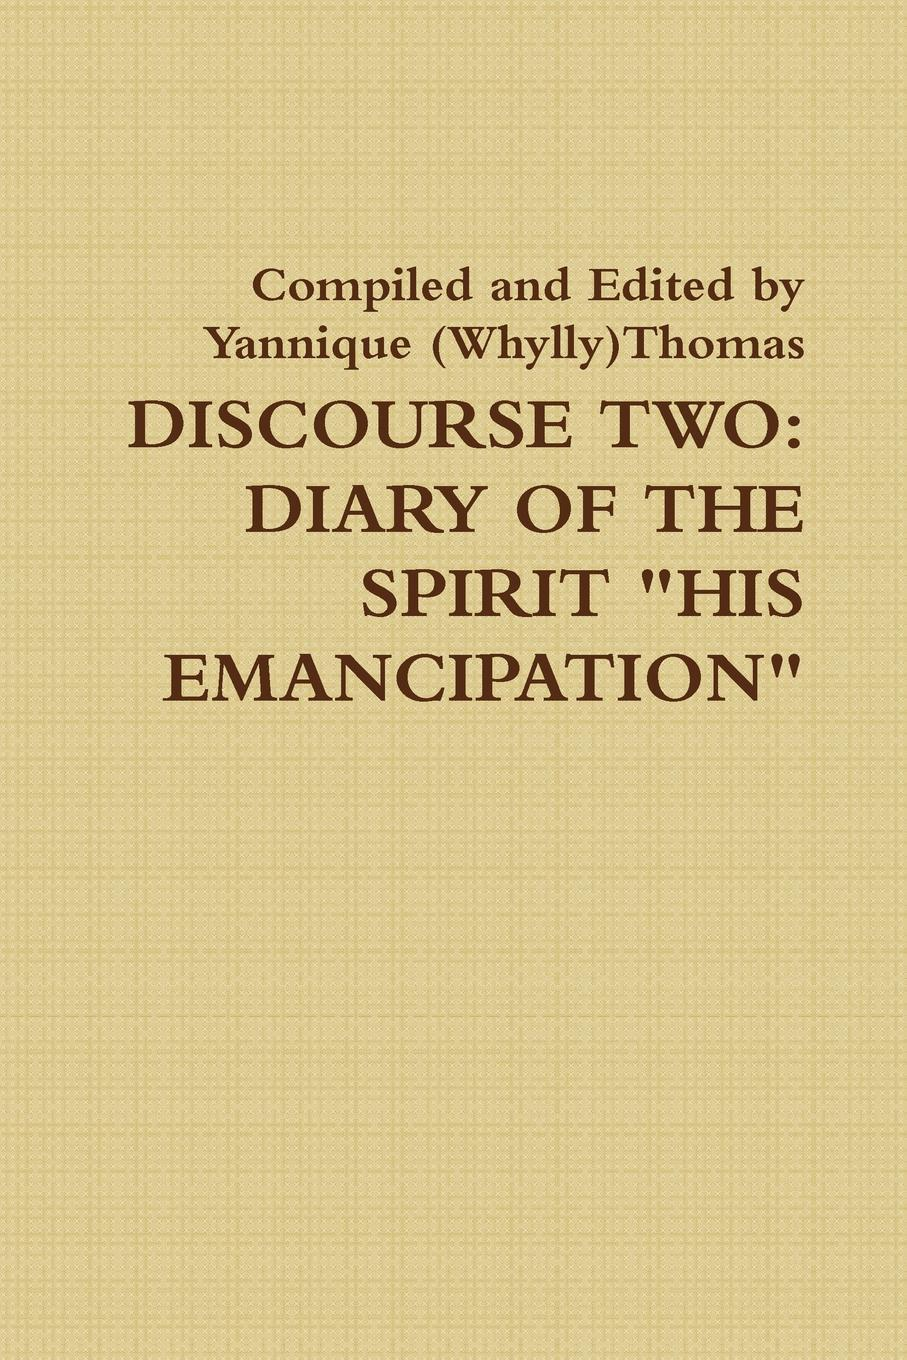 Yannique Thomas Discourse Two. Diary Of The Spirit HIS EMANCIPATION thomas fellows forget self help re examining the golden rule